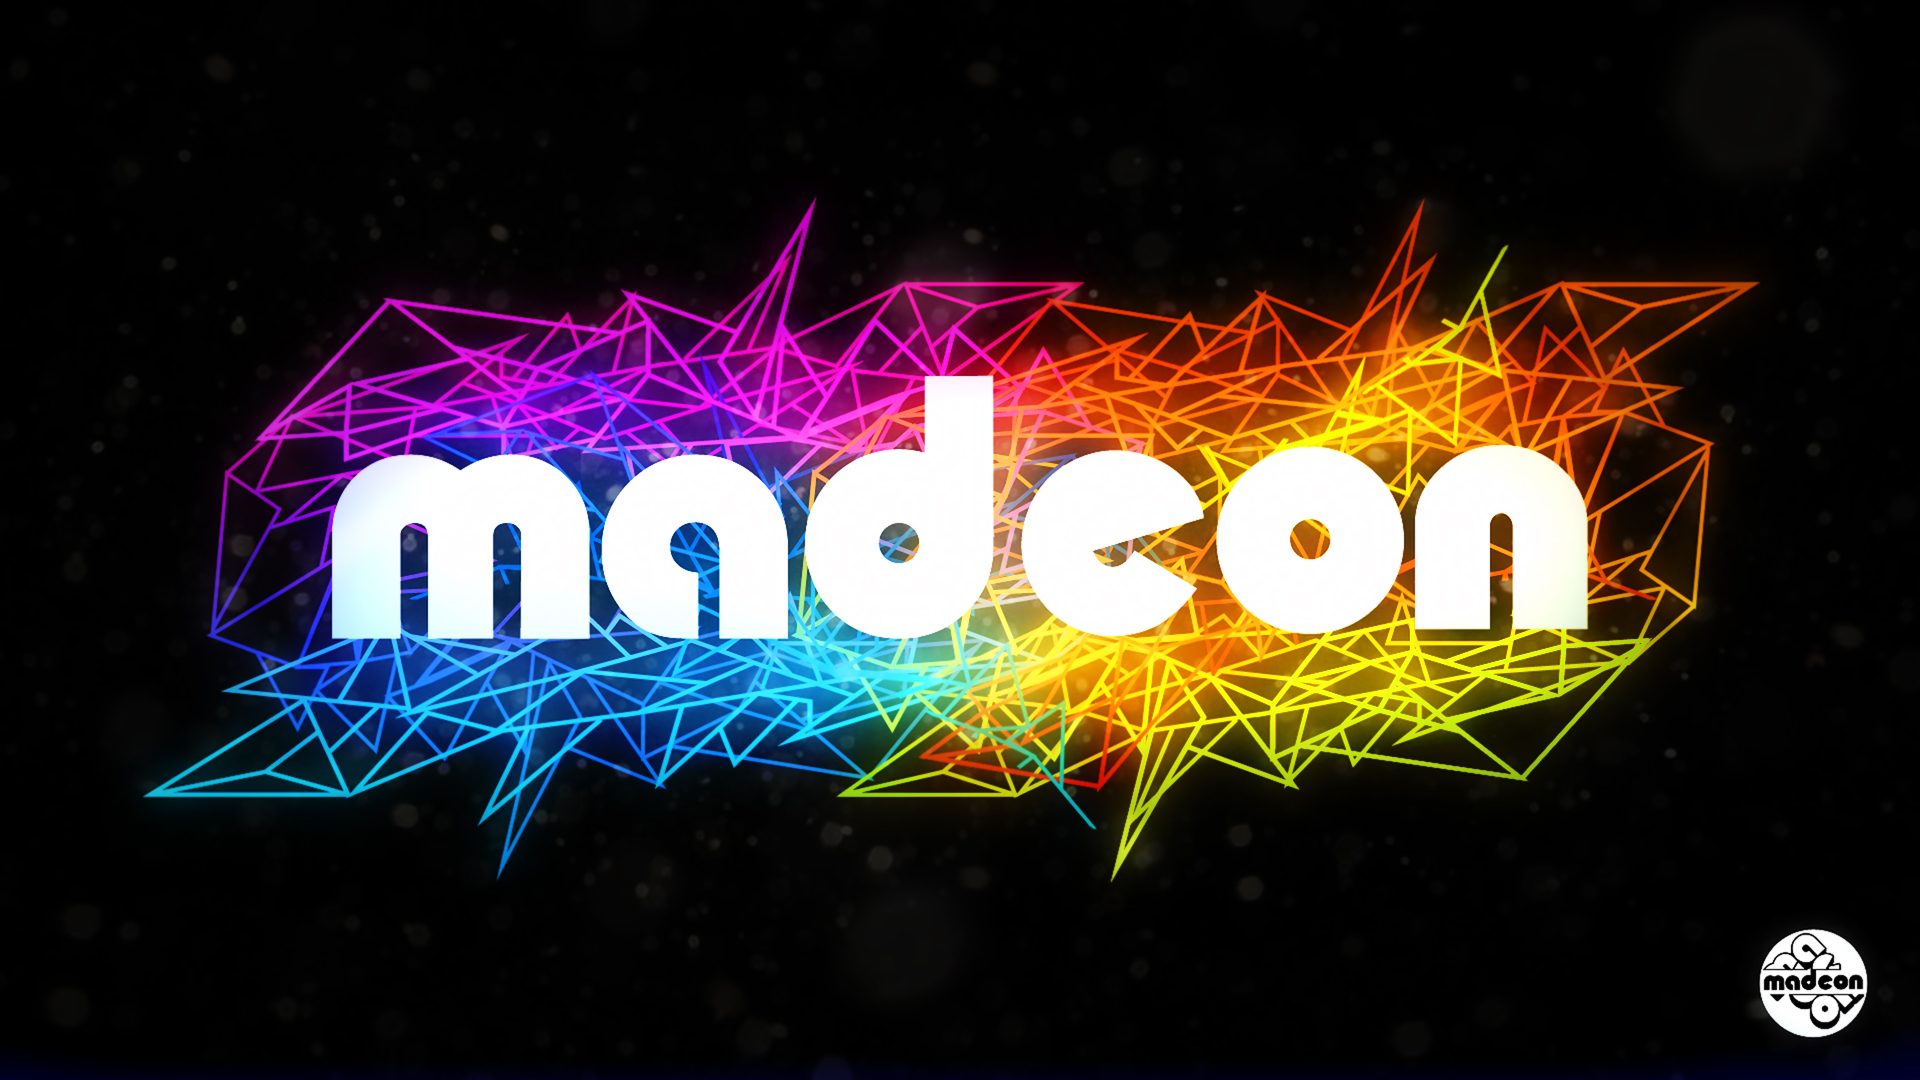 Madeon 2013 by iNicKeoN on DeviantArt